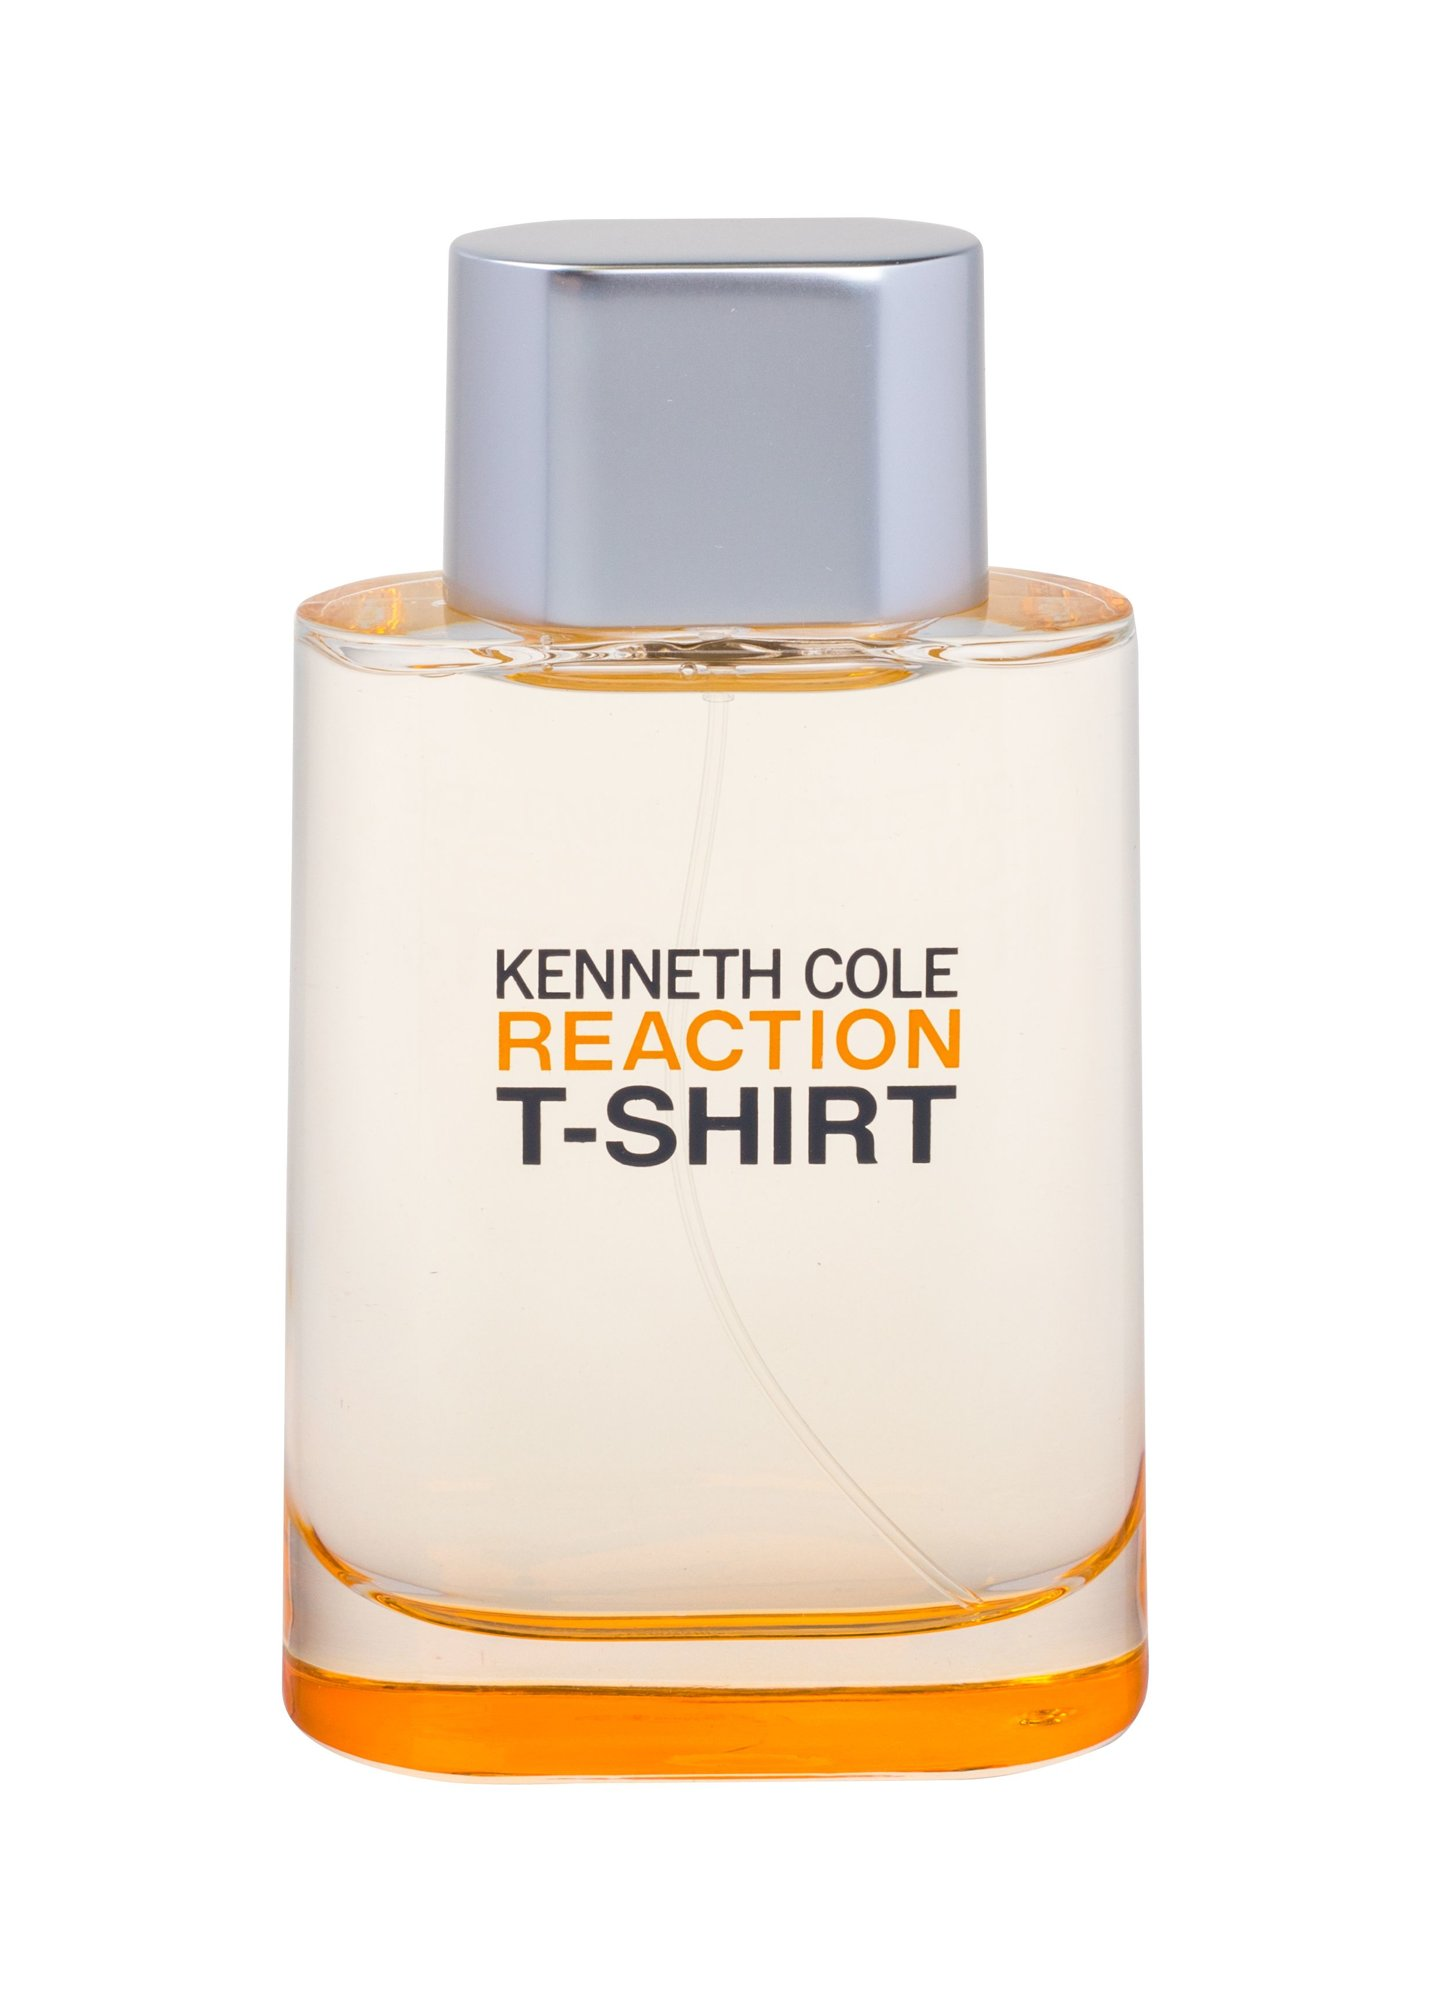 Kenneth Cole Reaction T-Shirt EDT 100ml